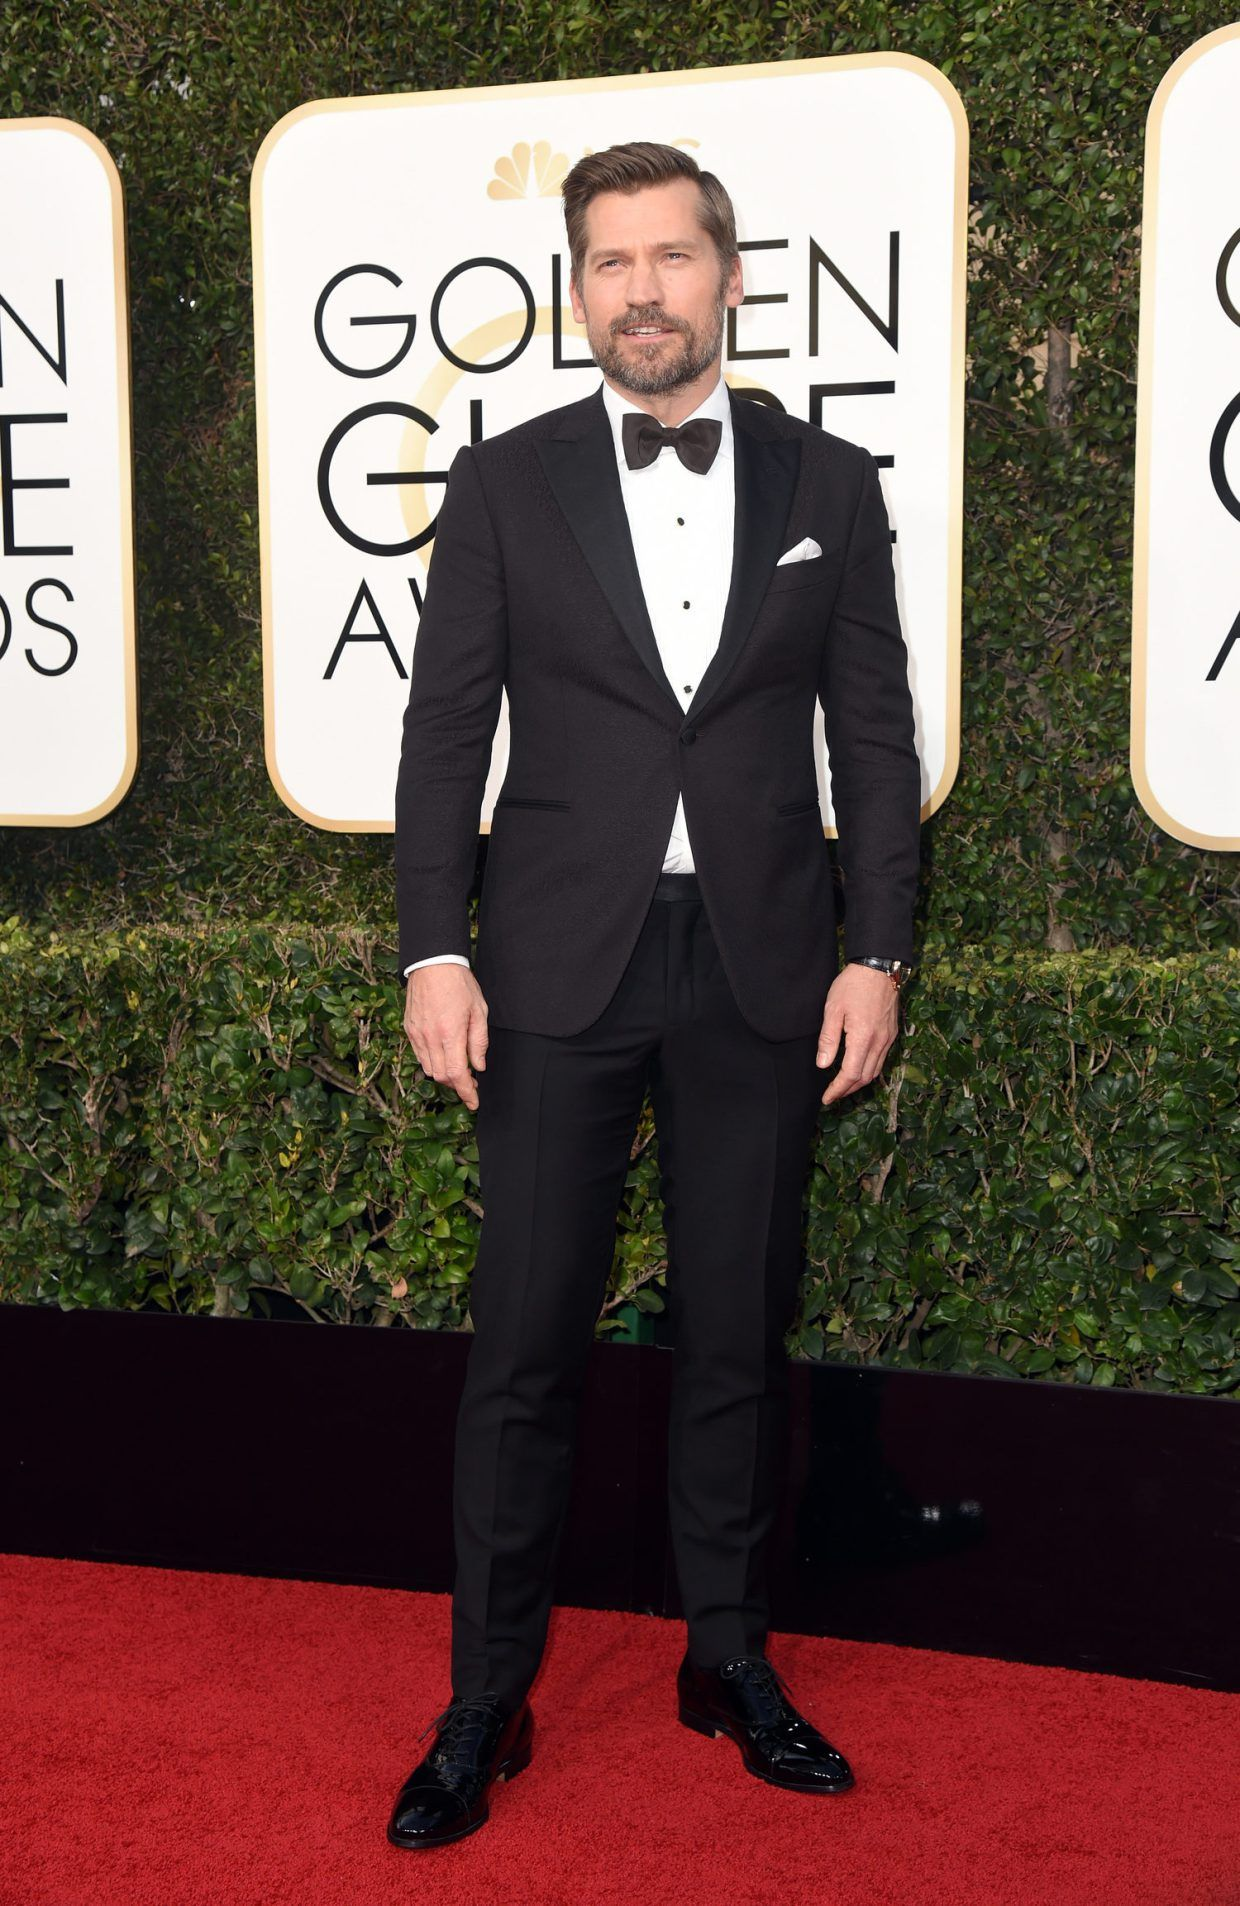 Suited Booted Best Dressed Men At The Golden Globes 2017 Golden Globes 2017 Golden Globes Red Carpet Golden Globes